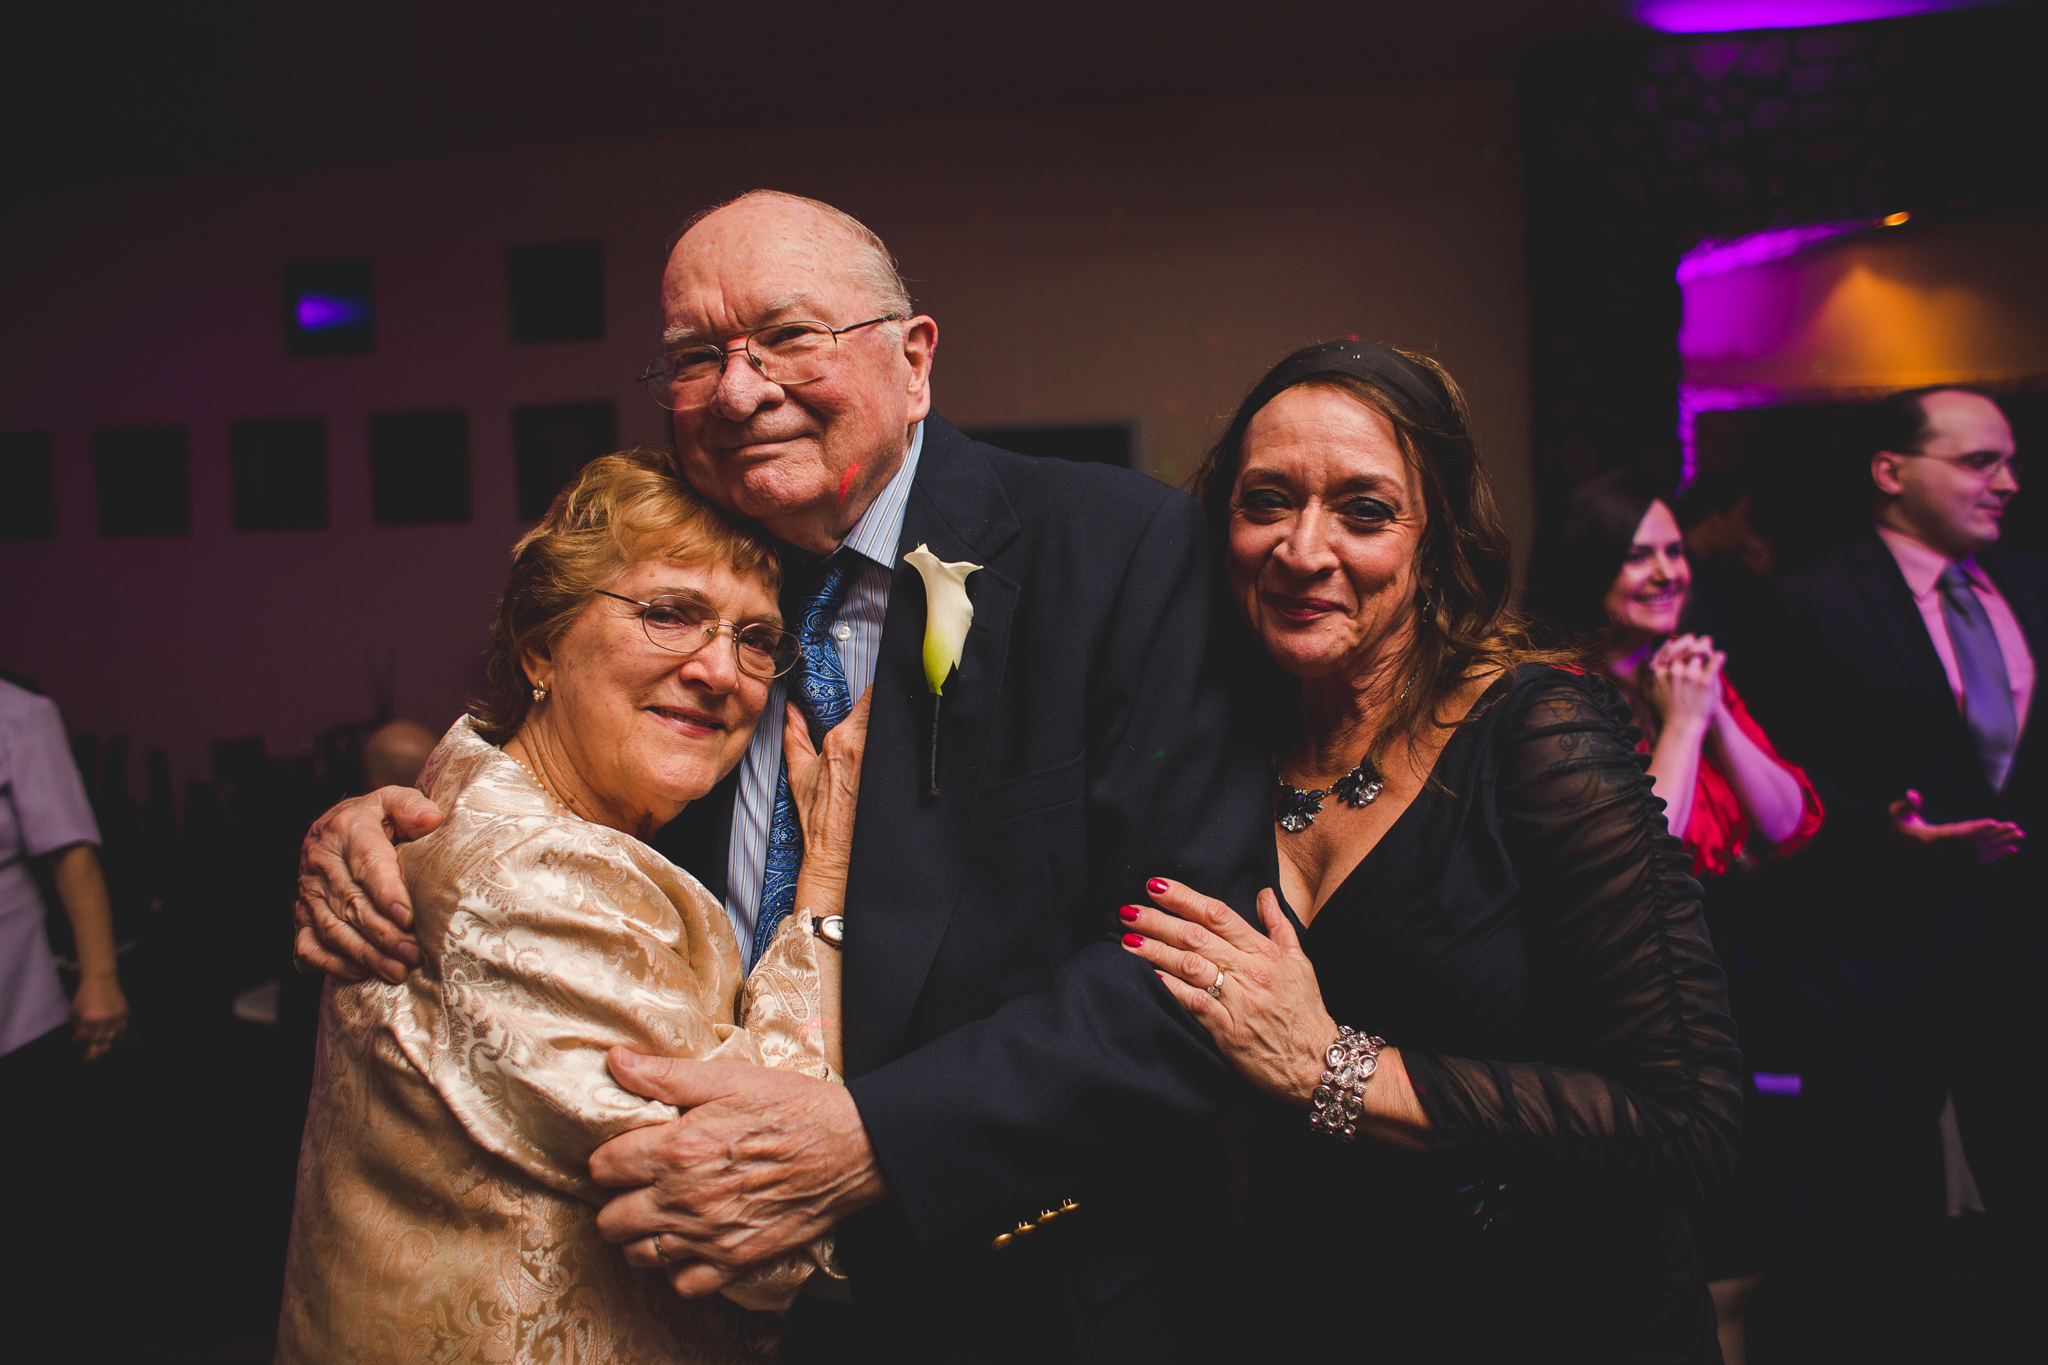 relatives share sweet moment at wedding mj